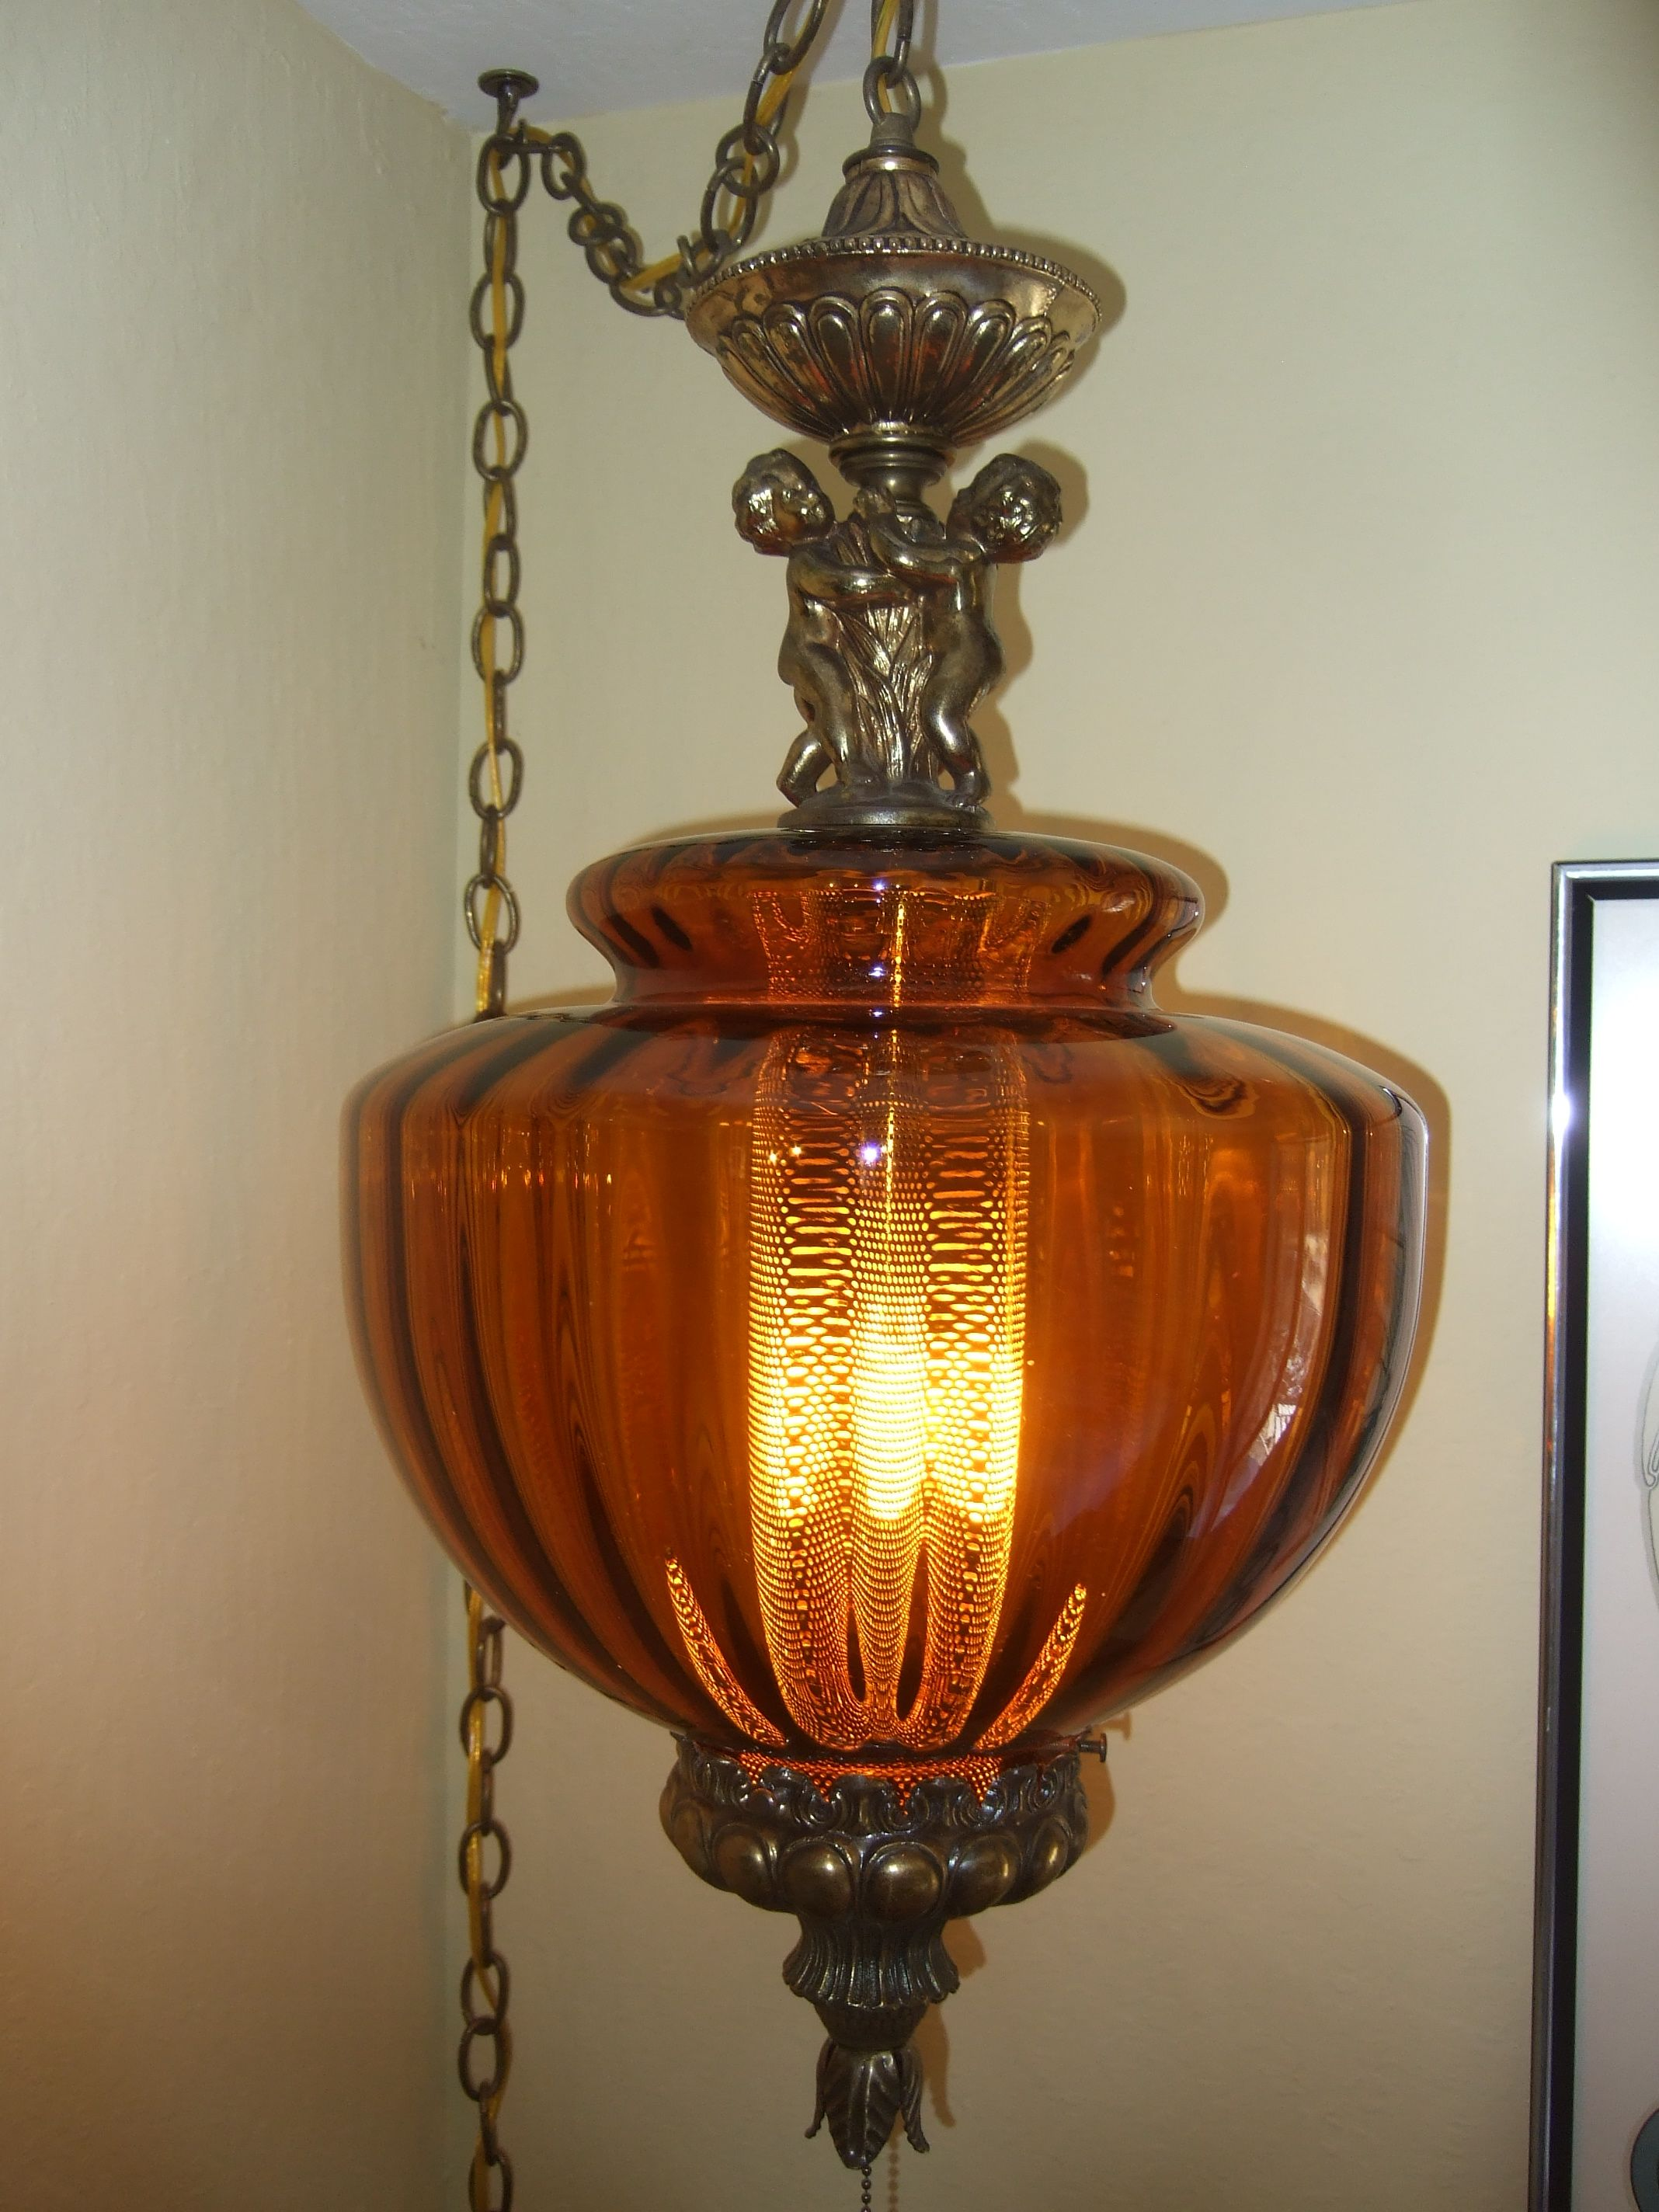 Cherub Amber Swag Lamp That I Designed And Made From Diffe Parts